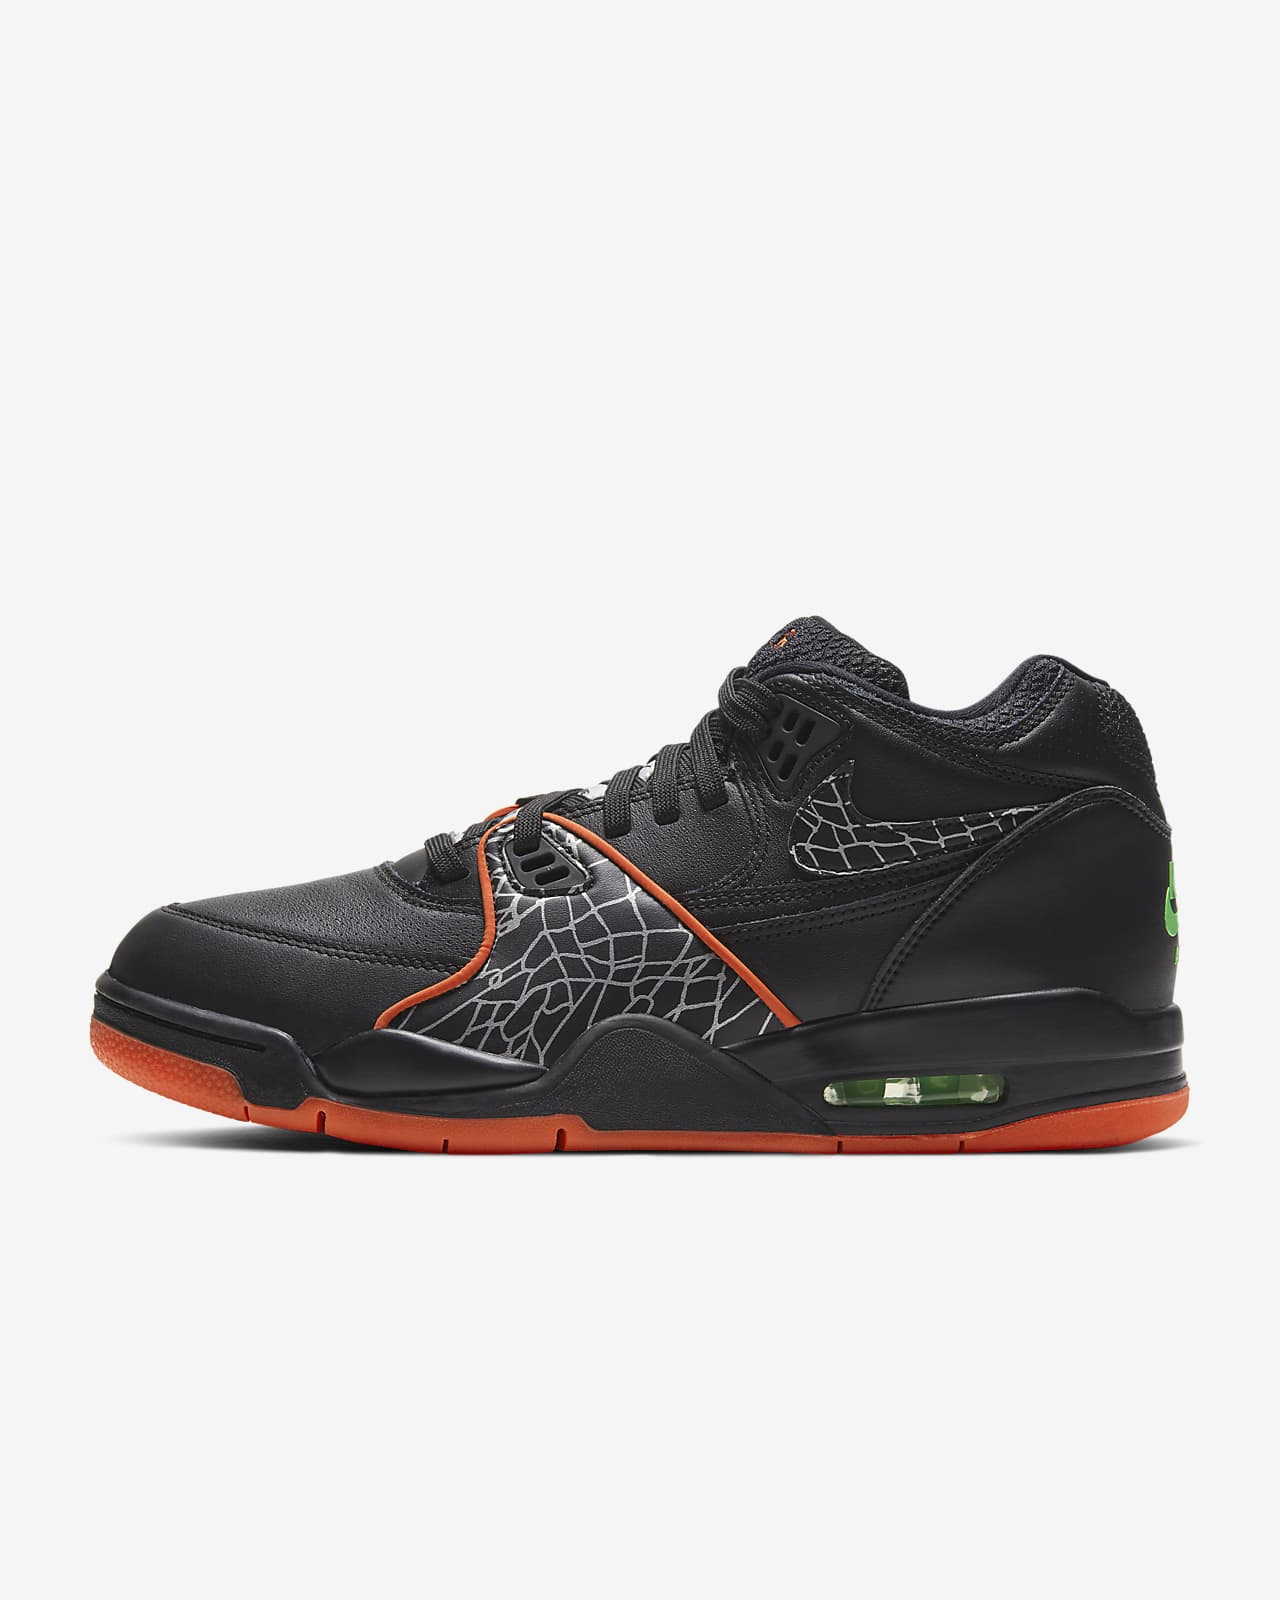 Chaussure Nike Air Flight 89 pour Homme